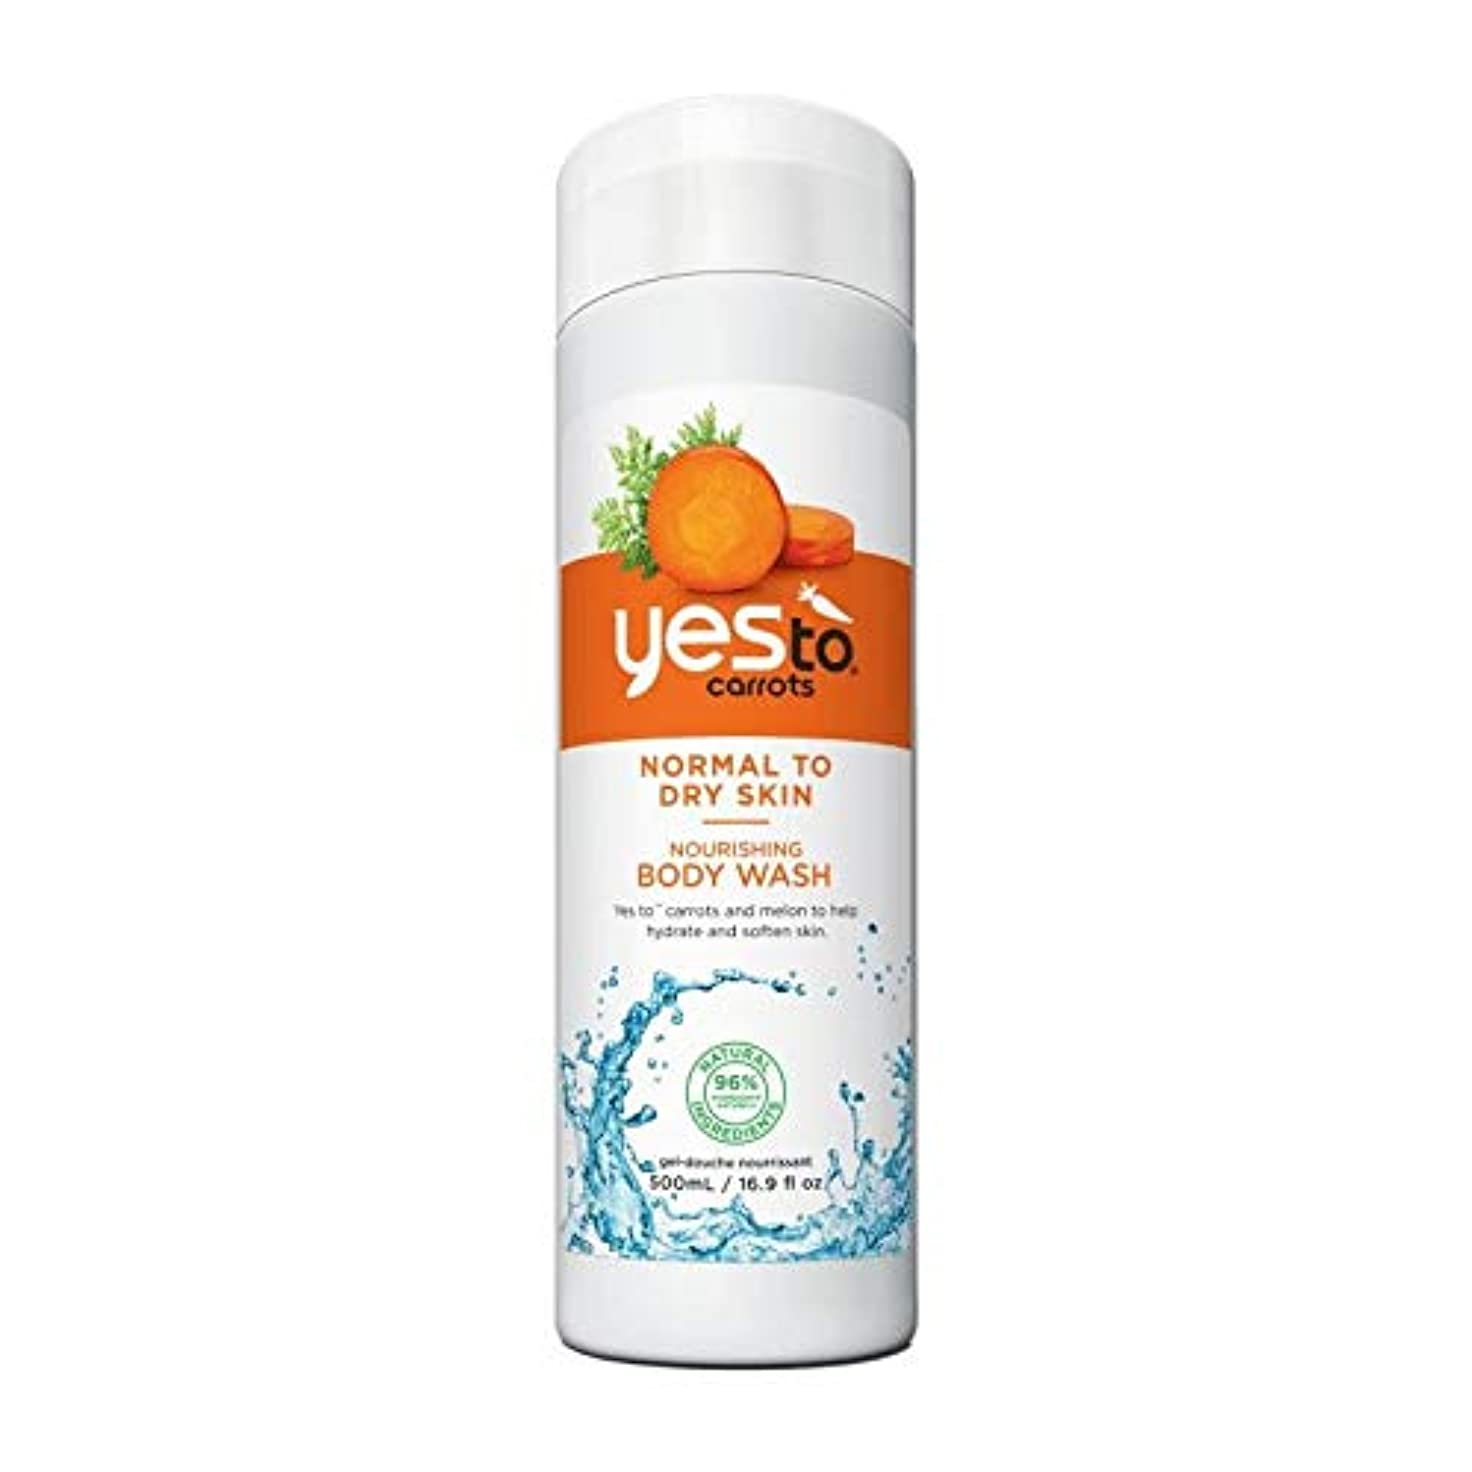 [YES TO! ] はいニンジンシャワージェル500ミリリットルへ - Yes To Carrot Shower Gel 500ml [並行輸入品]